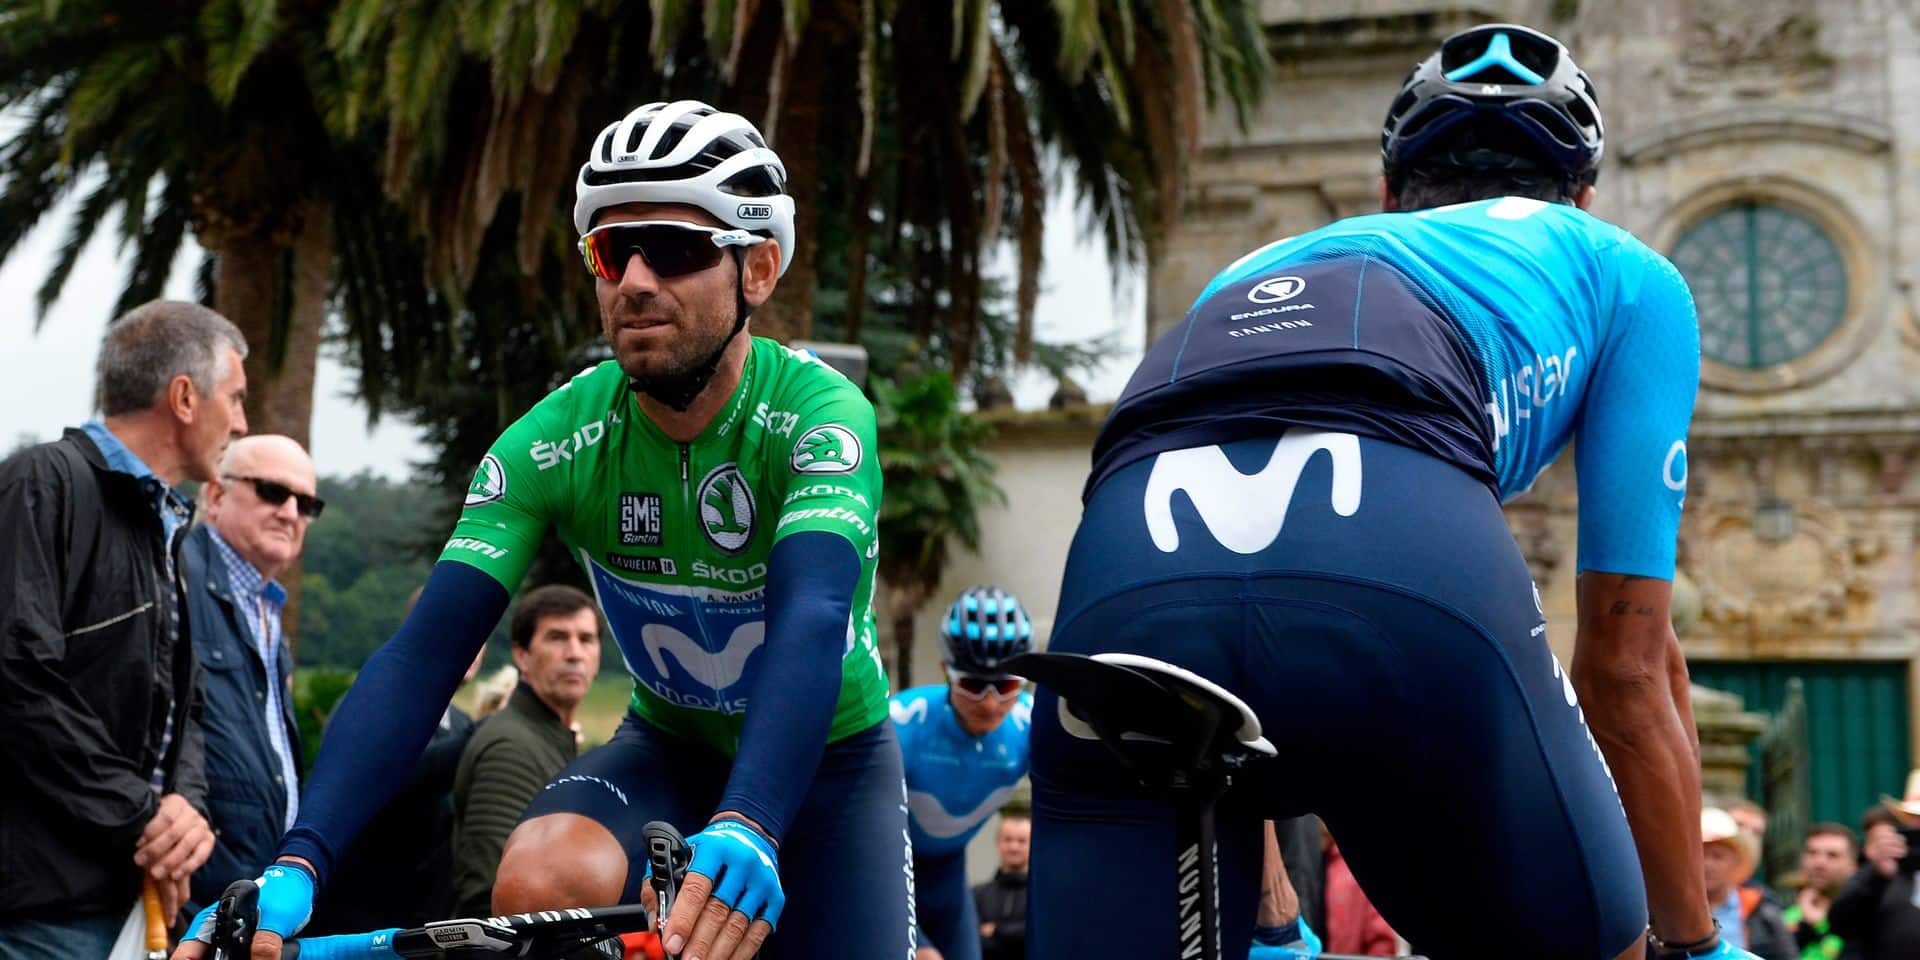 """Movistar's Spanish cyclist Alejandro Valverde (L) arrives for the start of the 12th stage of the 73rd edition of """"La Vuelta"""" Tour of Spain cycling race, a 181.1km route from Mondonedo to Mañon, on September 6, 2018. (Photo by MIGUEL RIOPA / AFP)"""